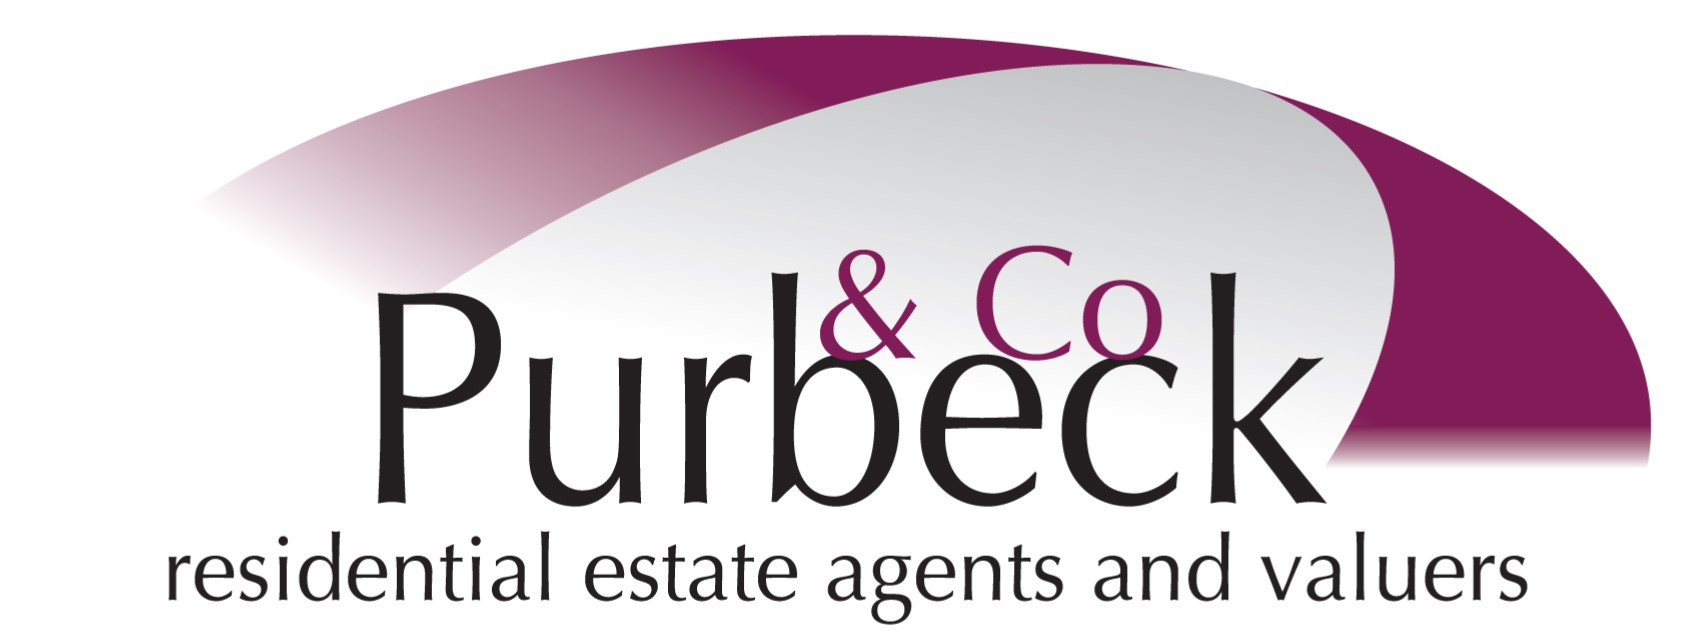 Purbeck & Co